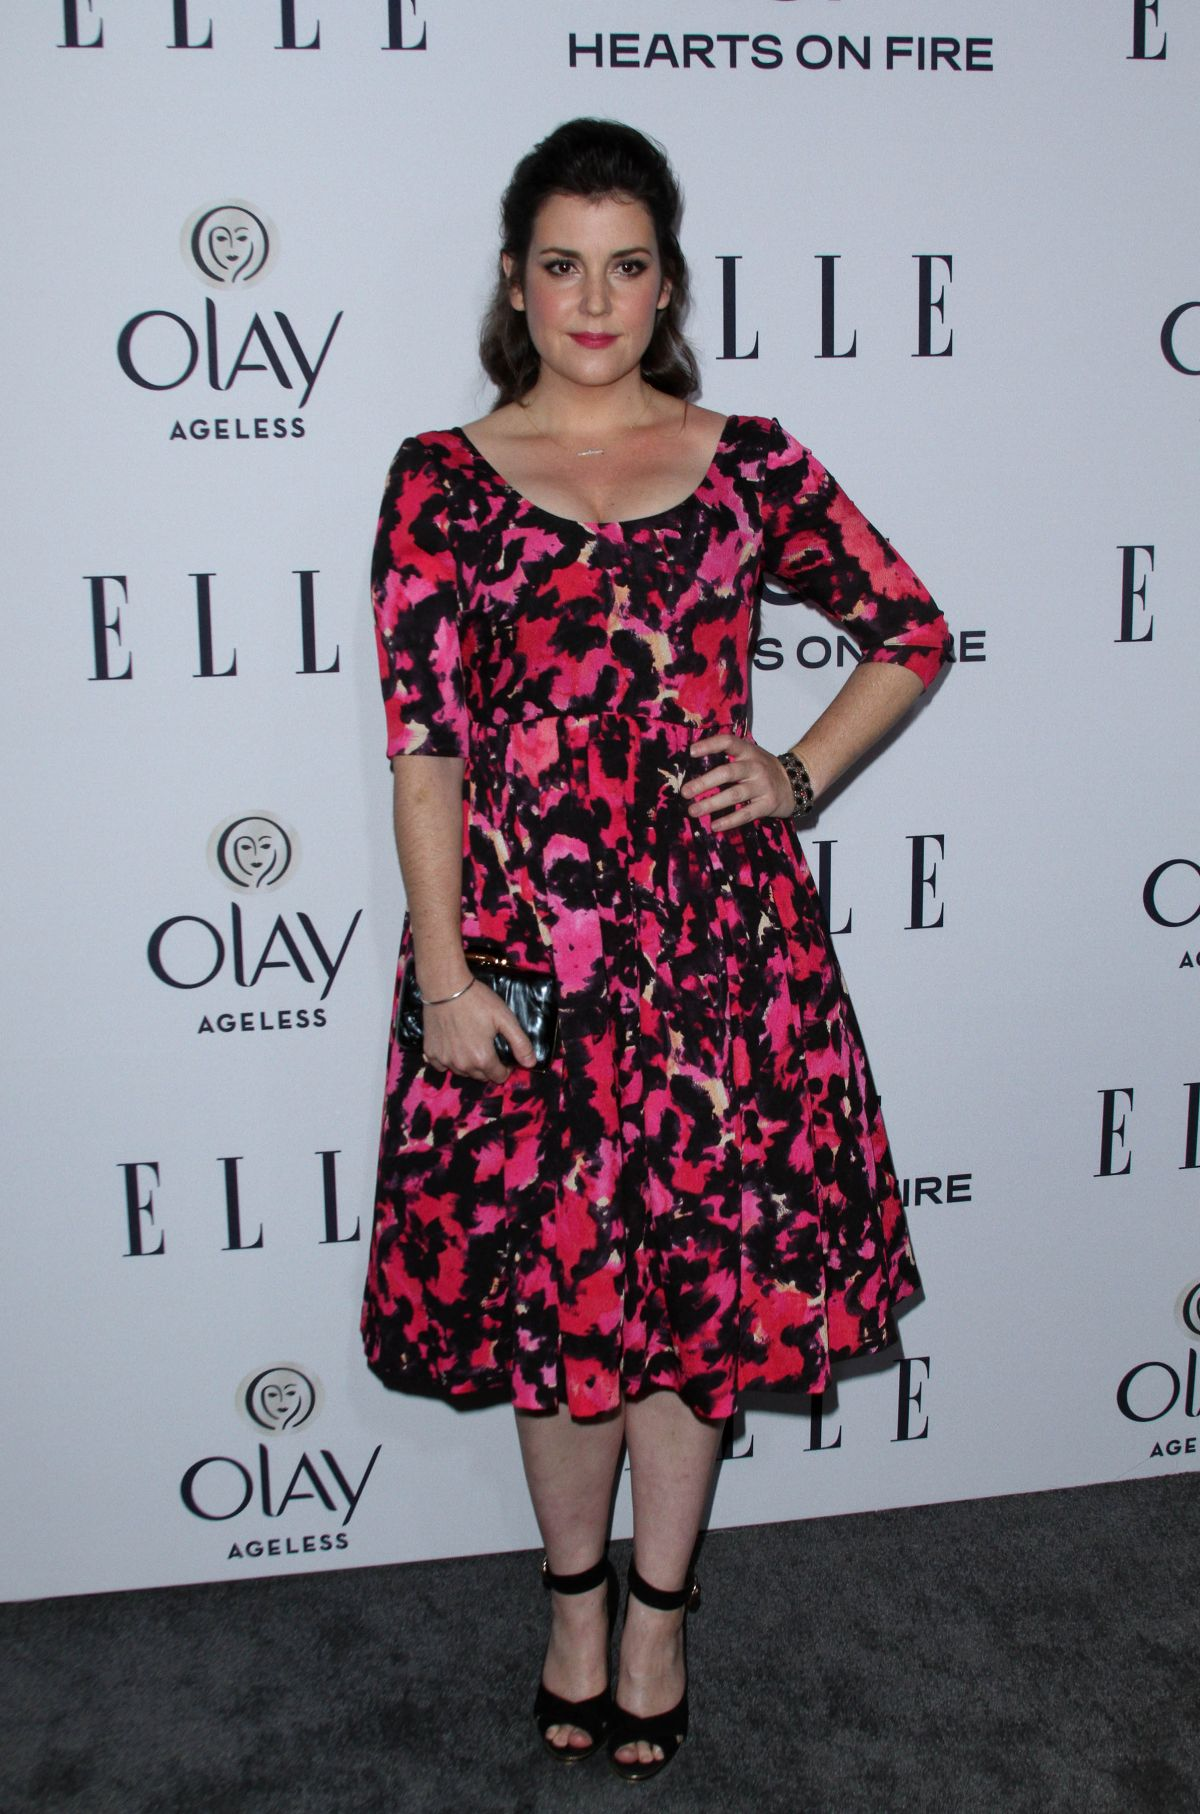 MELANIE LYNSKEY at Elle's Women in Television 2016 Celebration in Los Angeles 01/20/2016